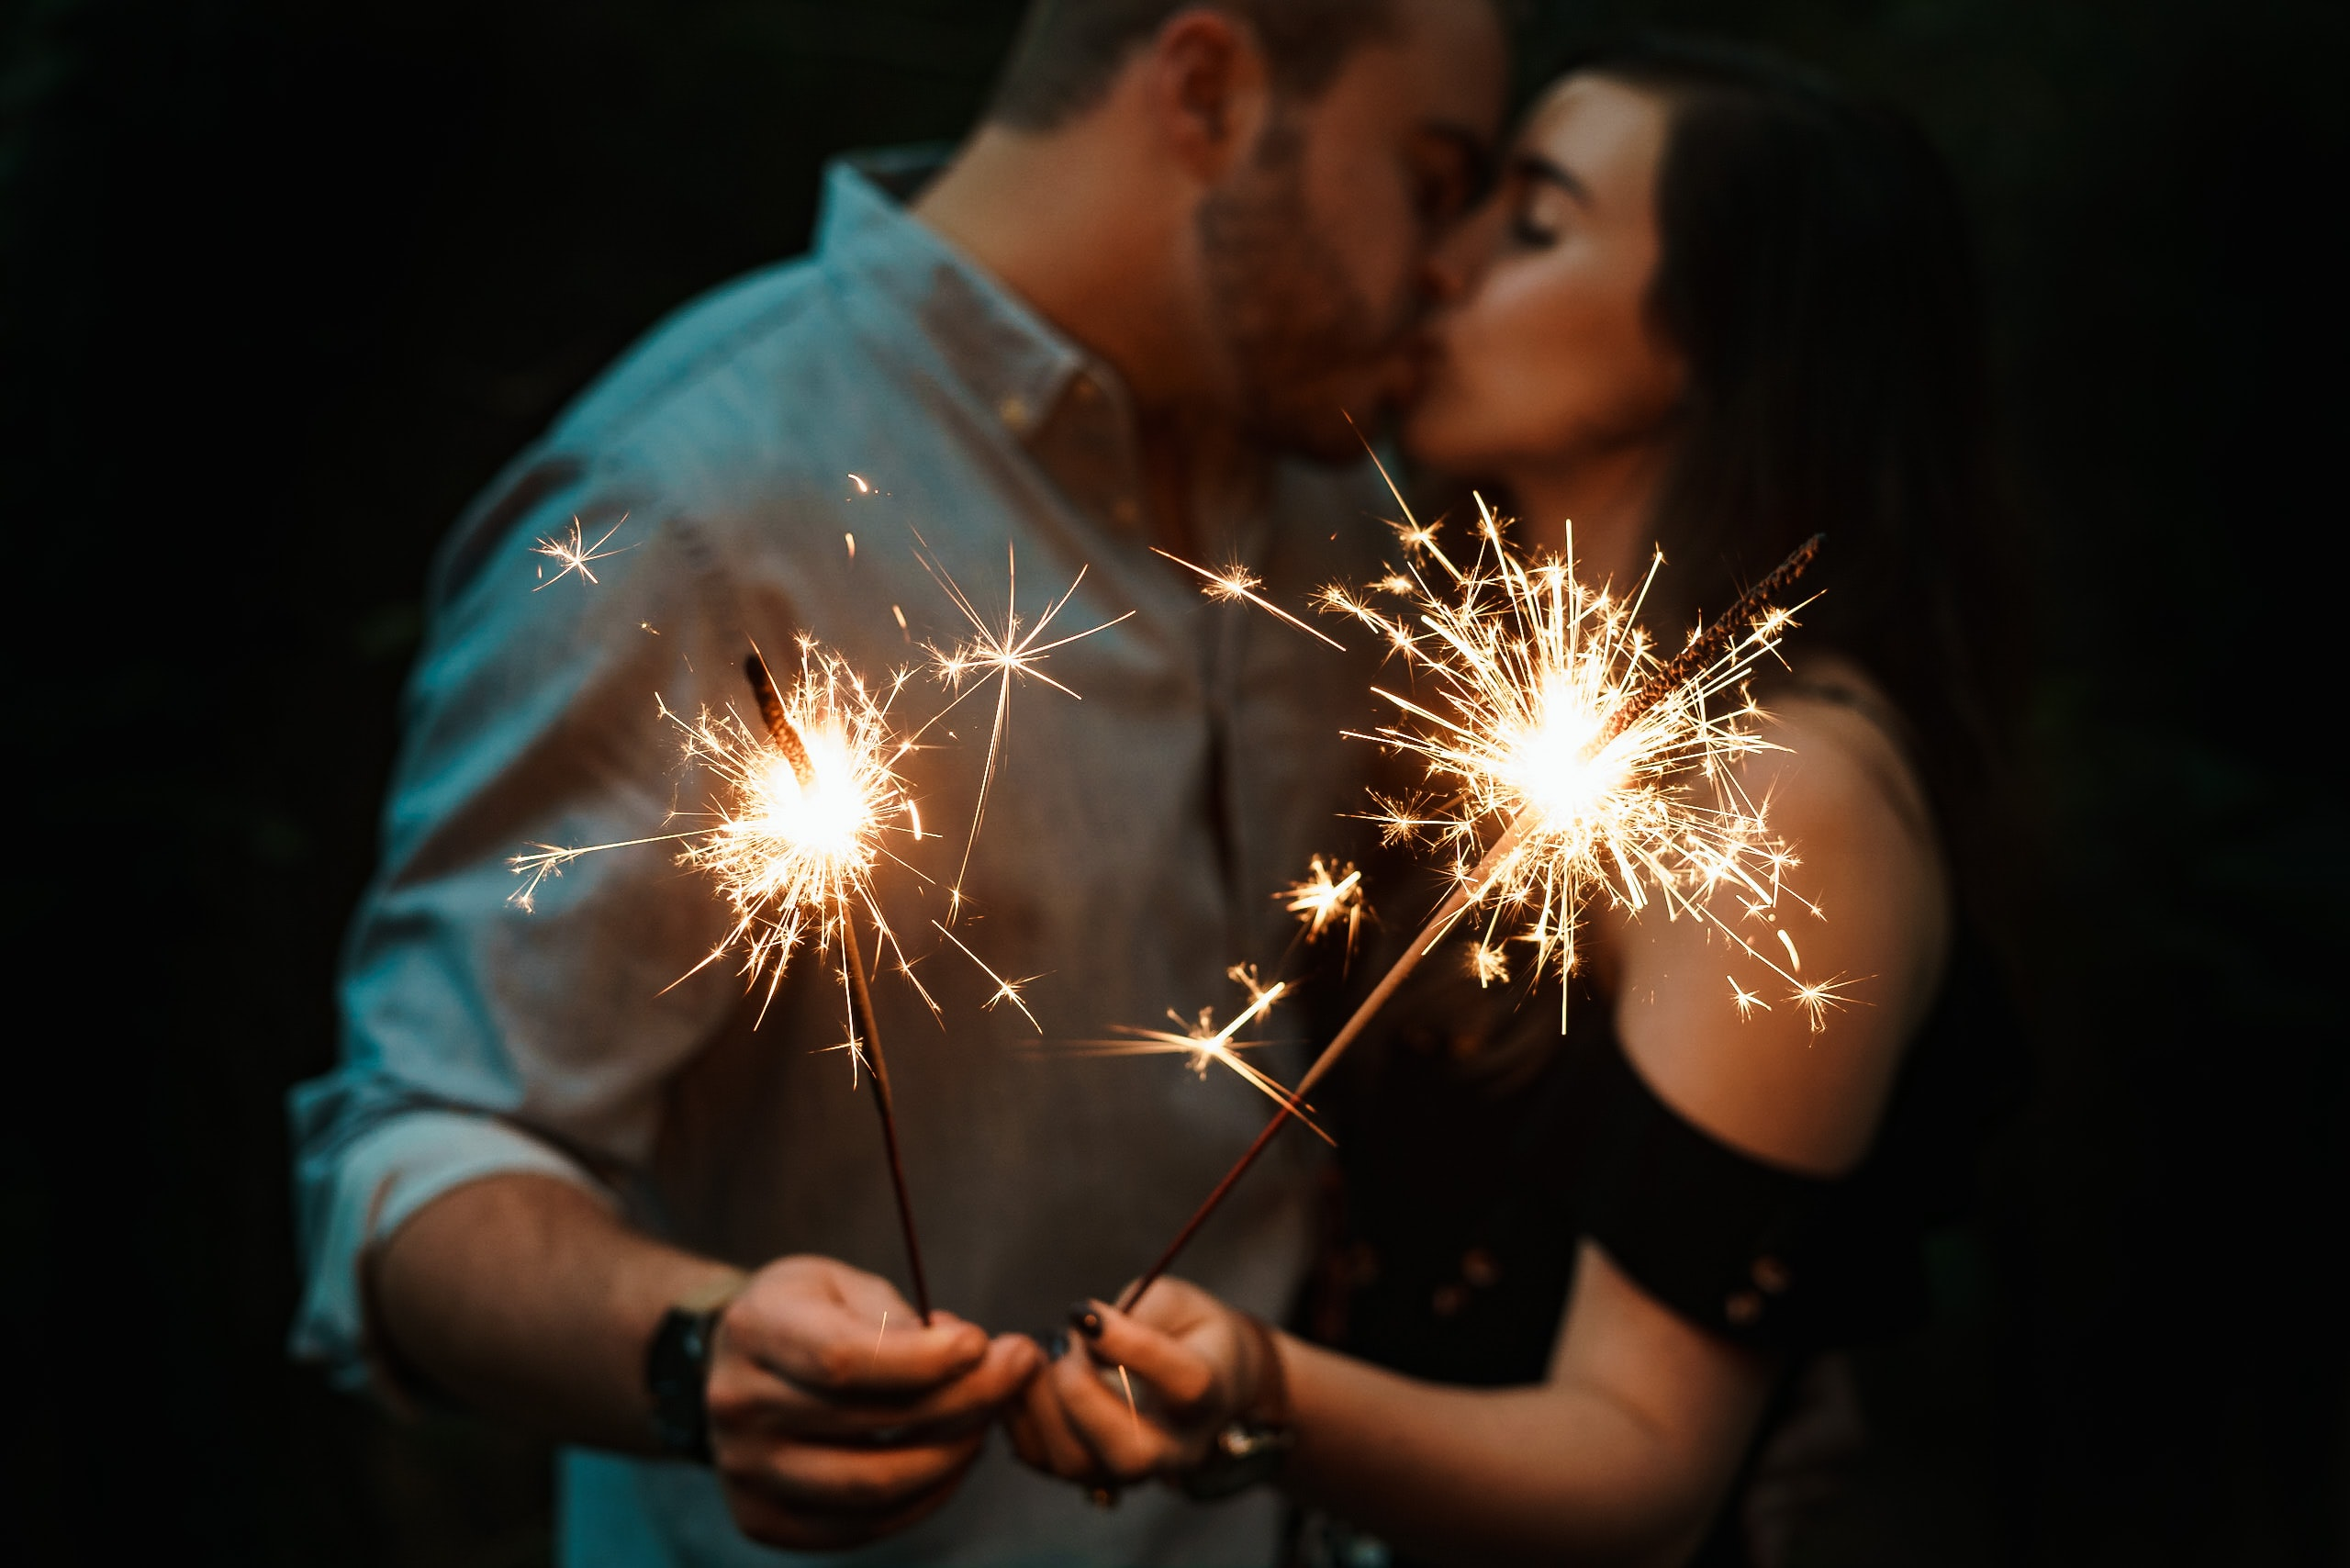 man and woman kissing each other while holding fireworks low-light photography